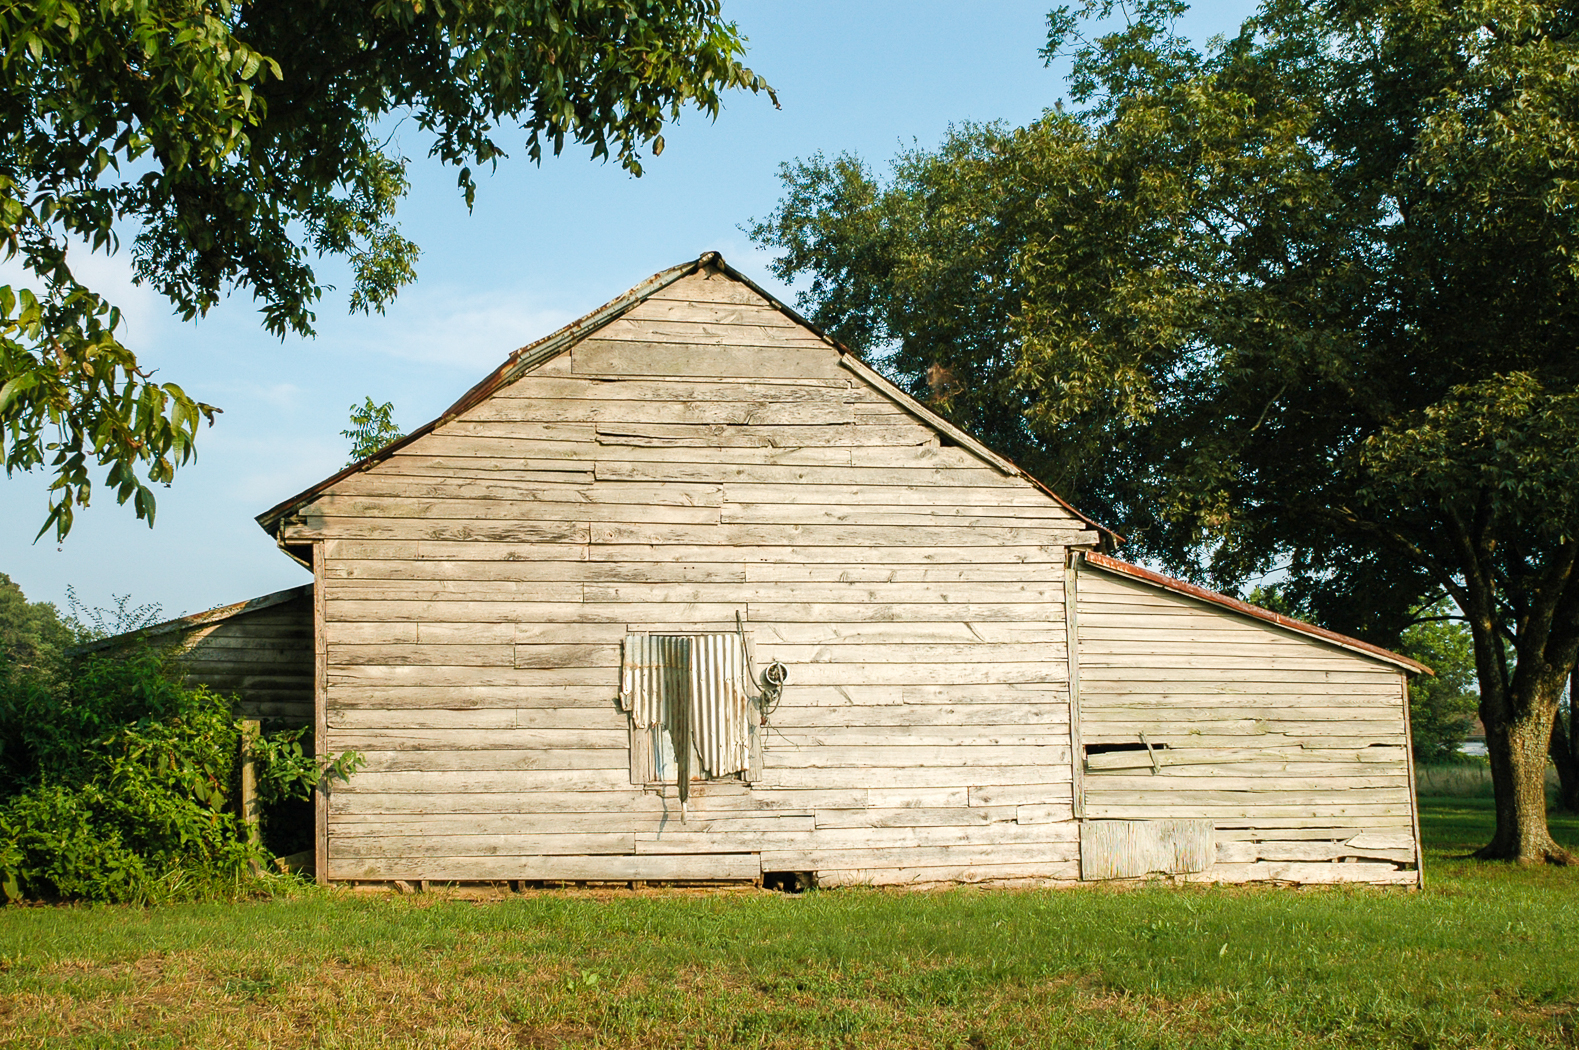 Barn, Sharpsburg, GA 2005